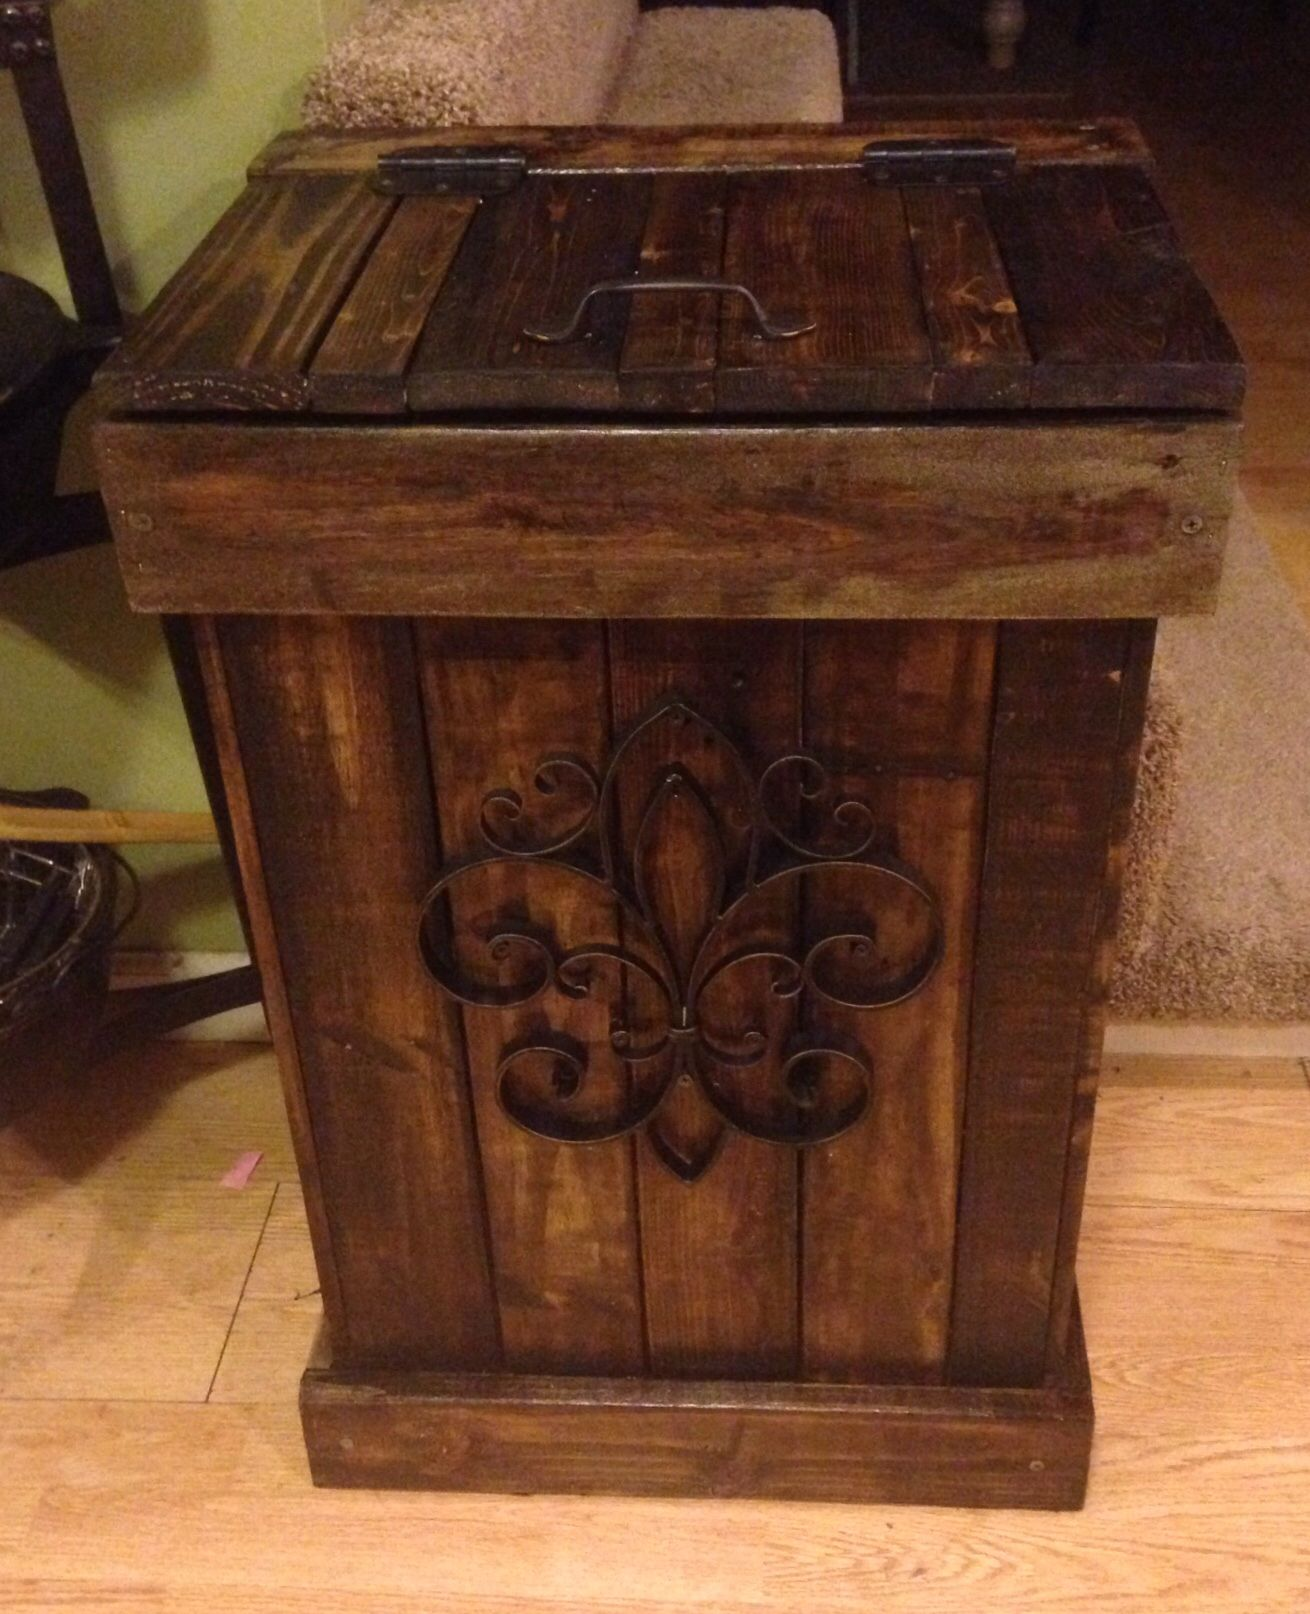 30 Gallon Kitchen Trash Can Aid Dish Washer Wooden Made From Pallets